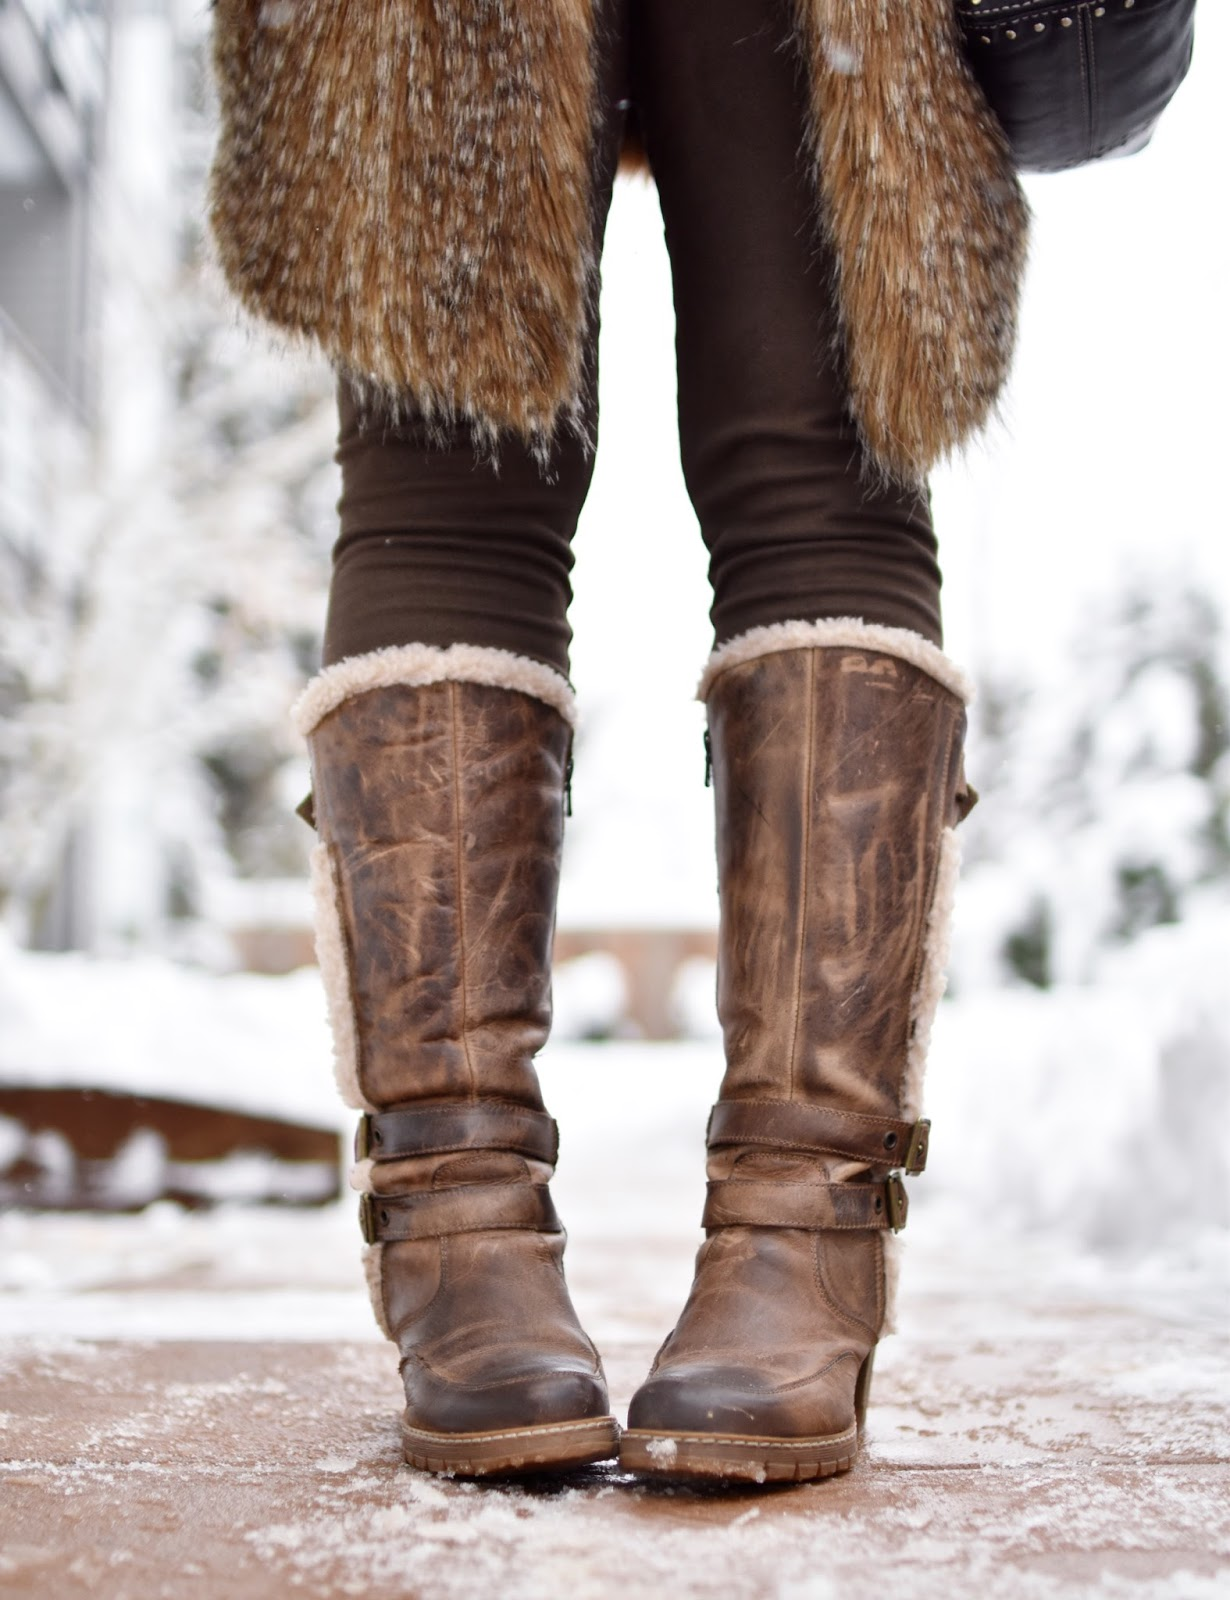 Monika Faulkner outfit inspiration - long faux-fur vest, vegan suede leggings, fleece-trimmed boots